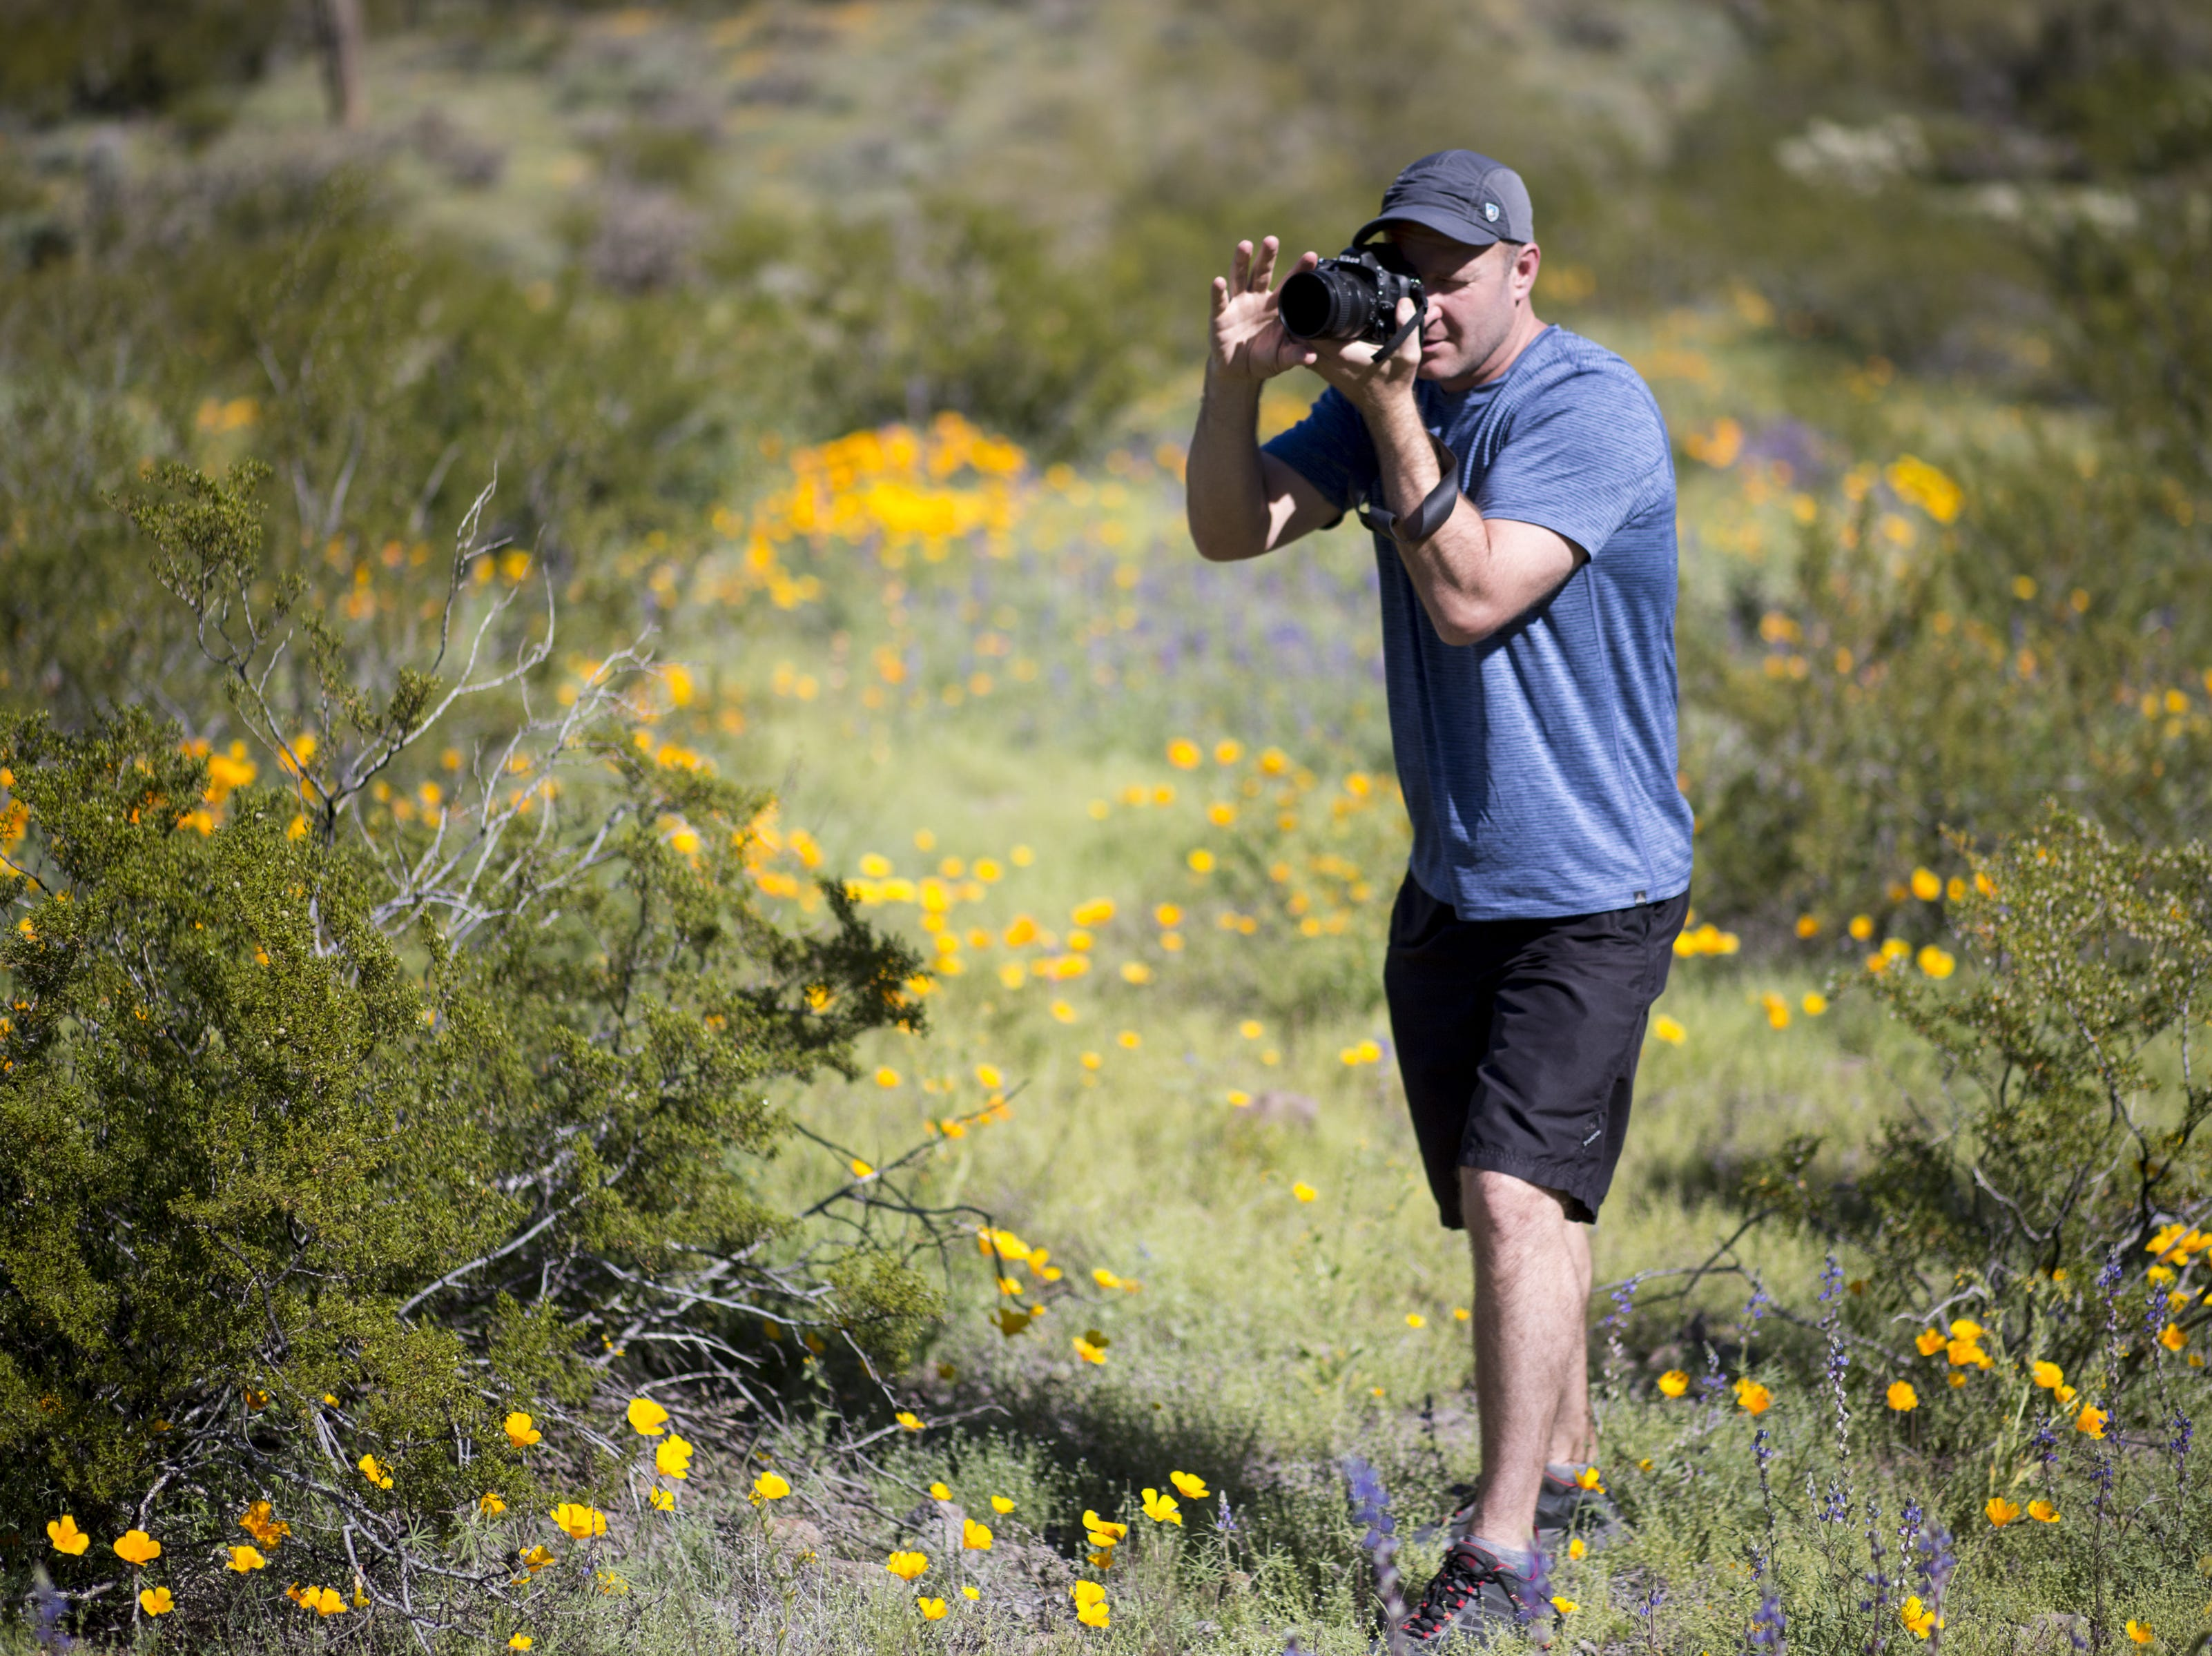 Chris DeVito (Gilbert) photographs wildflowers, March 5, 2019, at Picacho Peak State Park, Arizona.